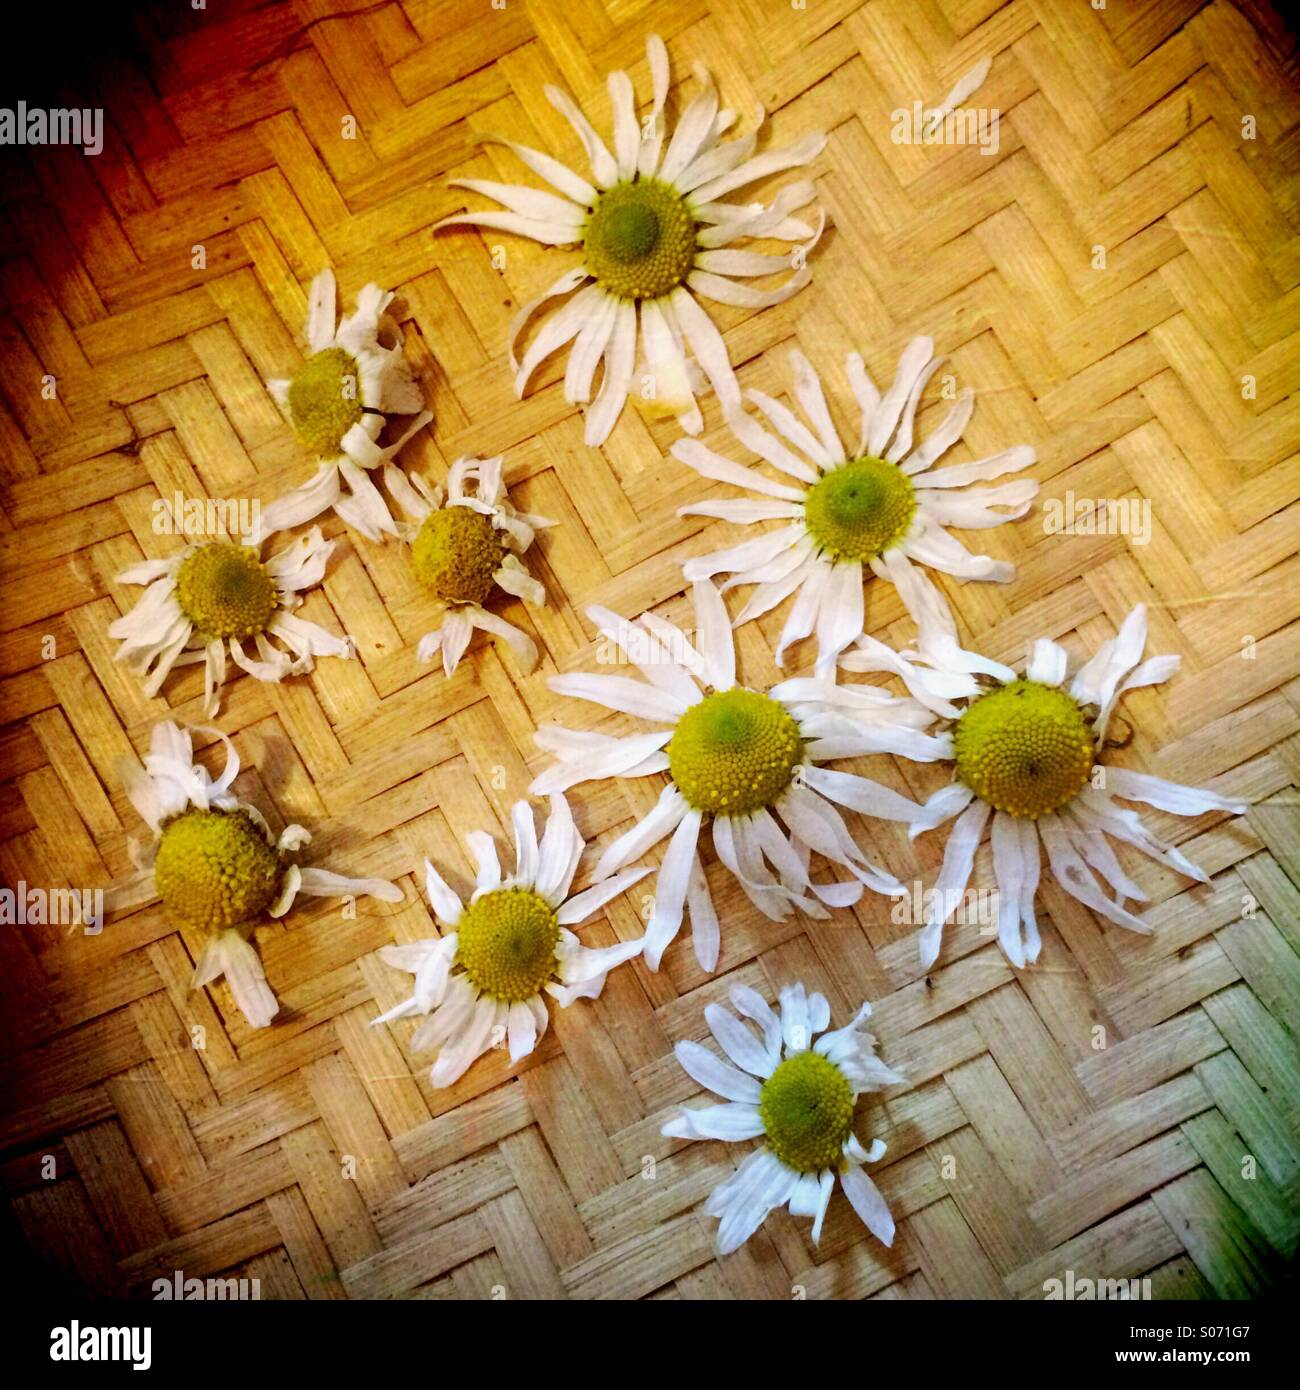 A woven bowl with camomile flowers - Stock Image